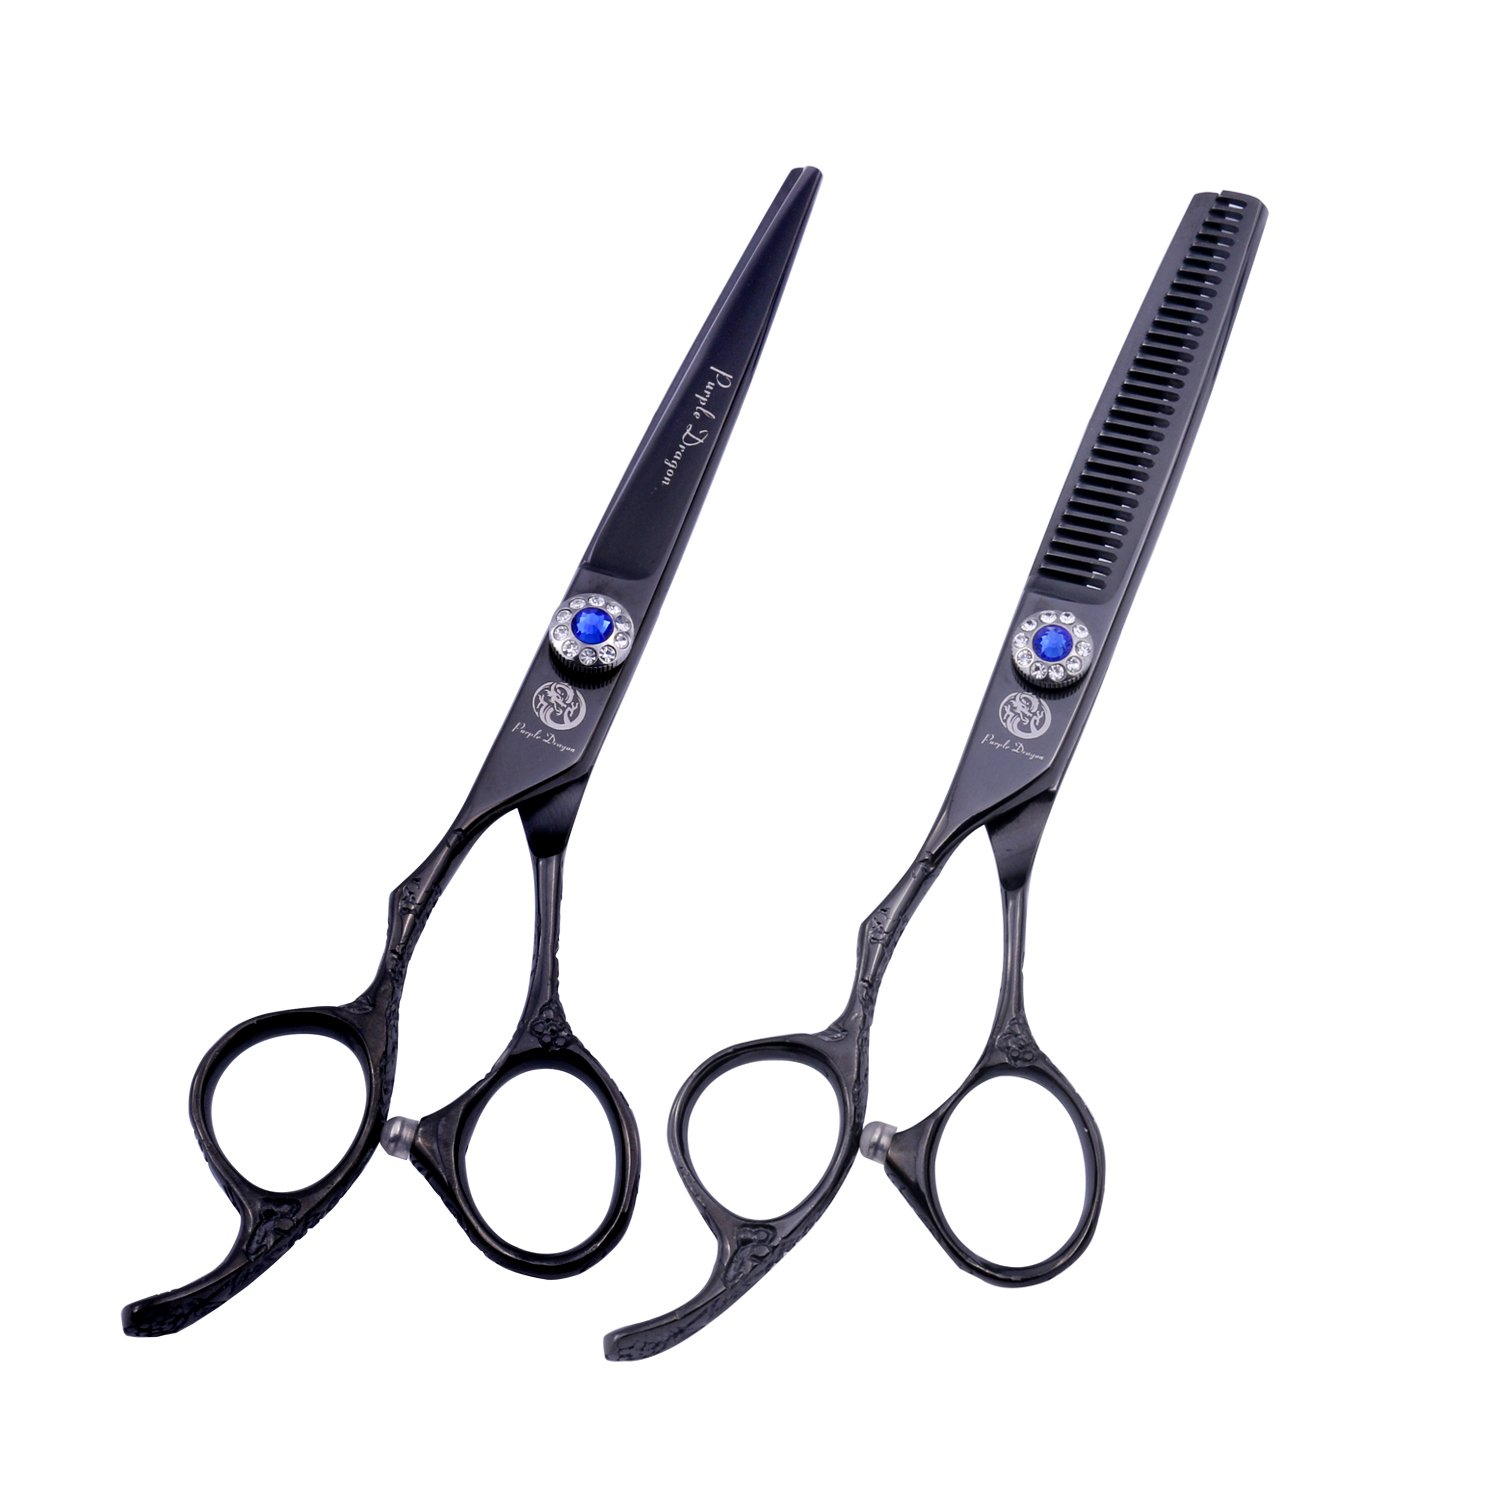 Max 60% OFF Purple Dragon 6.0 Sales results No. 1 inch Professional 440C Salon Hair Left-handed